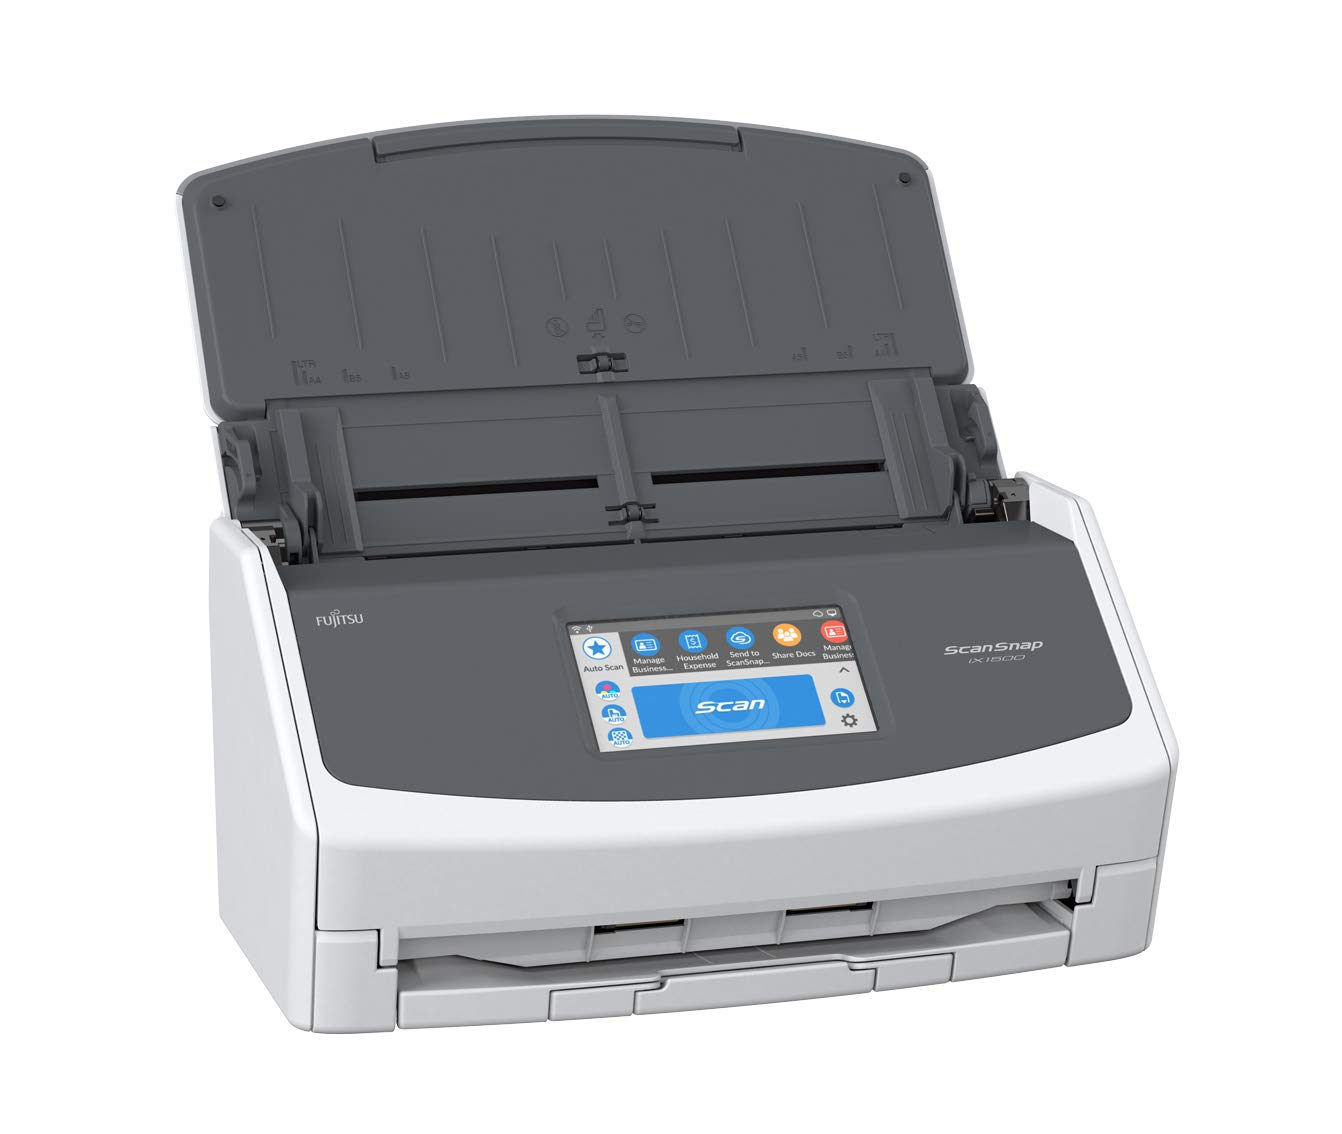 Fujitsu ScanSnap iX1500 Color Duplex Document Scanner with Touch Screen for Mac and PC [Current Model, 2018 Release] by Fujitsu